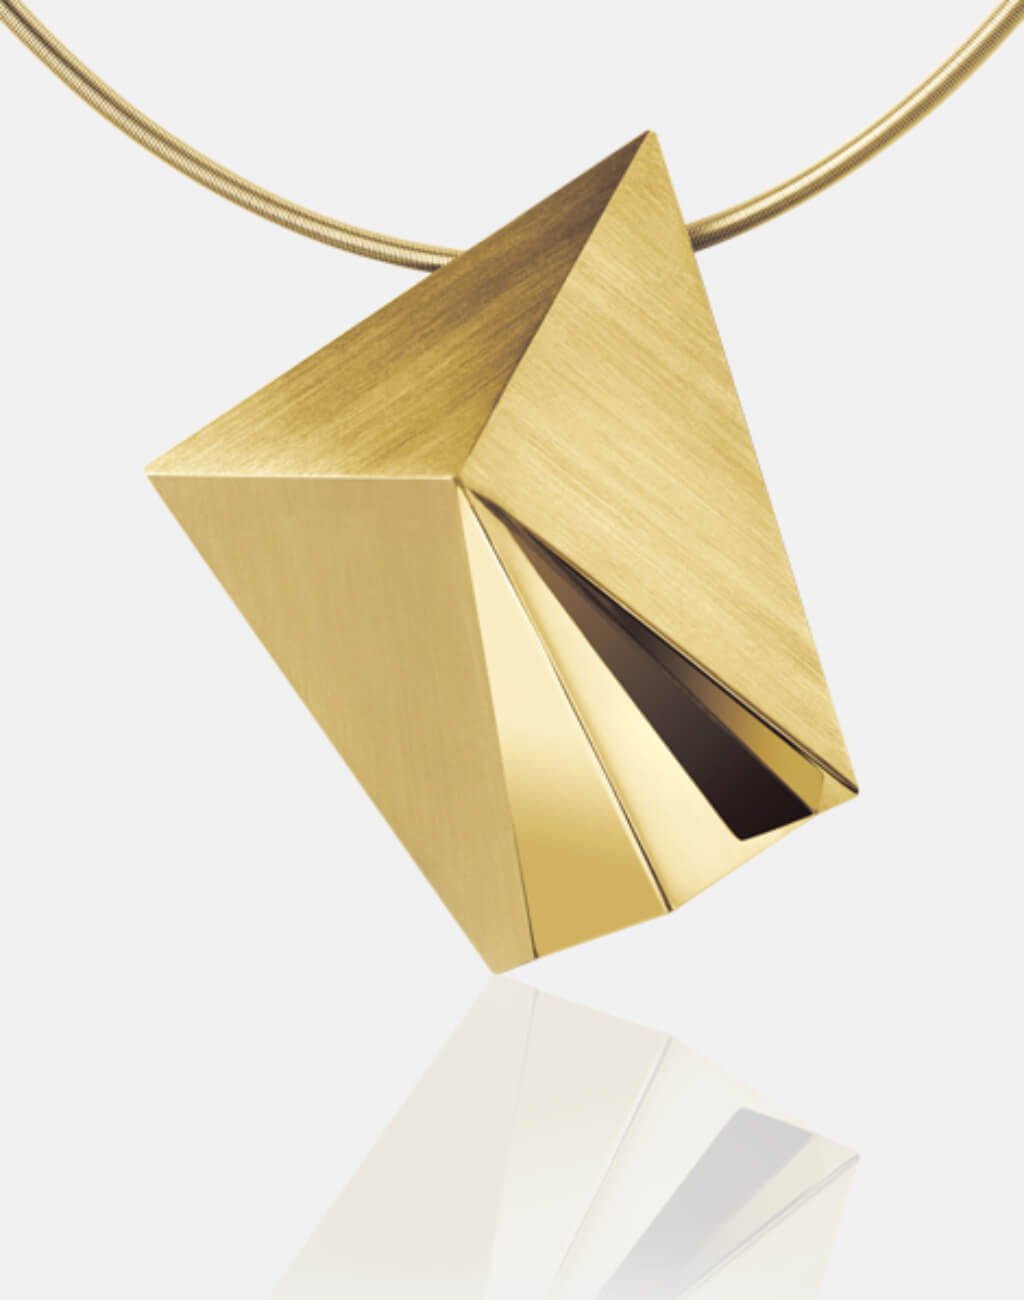 Cyllena | Collier, Kettenanhänger, Kette, 750/- Gelbgold | necklace, pendant, 18kt yellow gold | SYNO-Schmuck.com